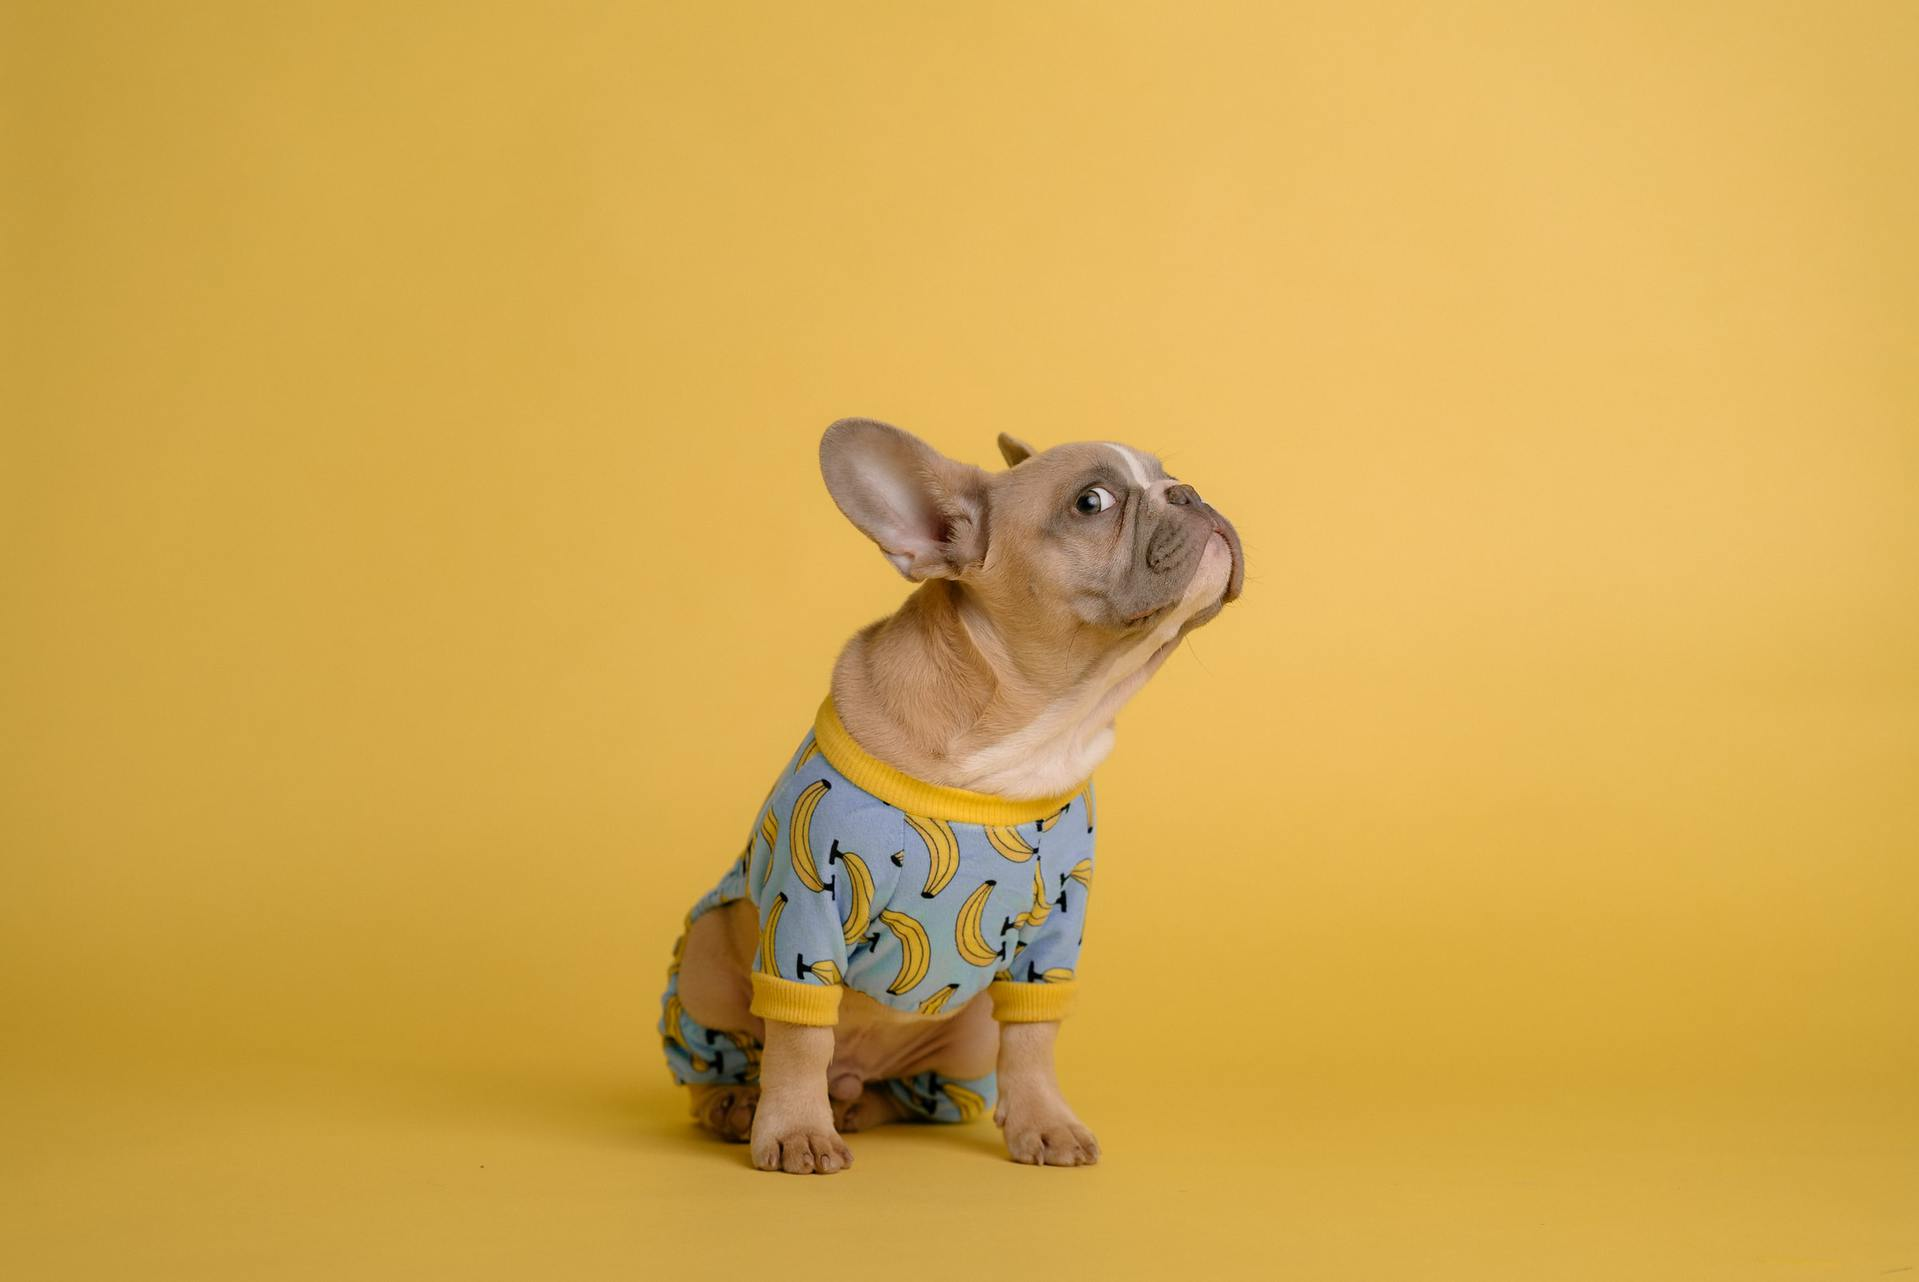 Can Dogs eat bananas? The health benefits